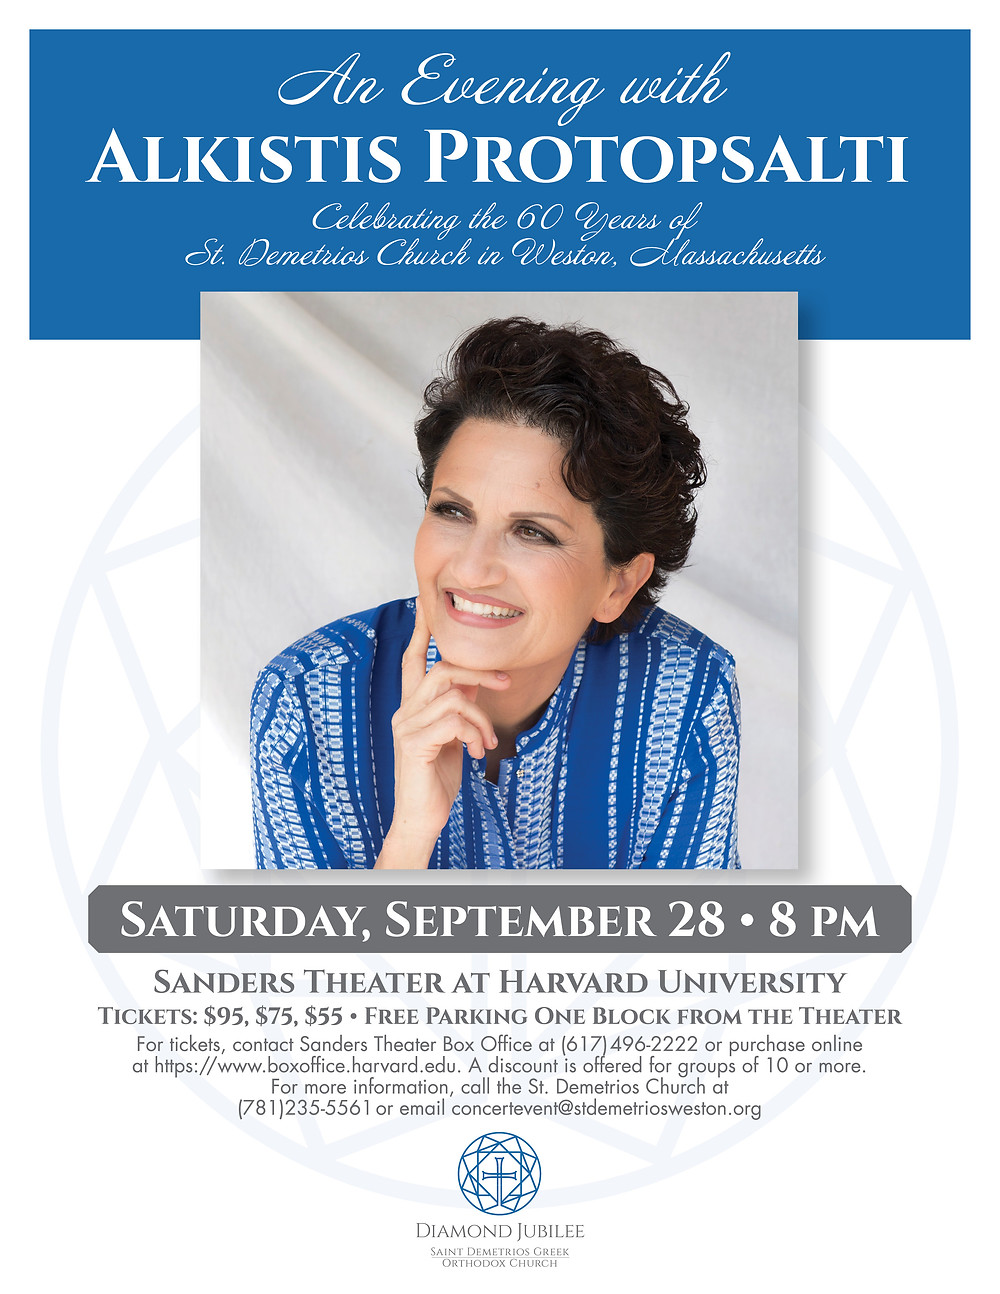 An Evening with Alkistis Protopsalti